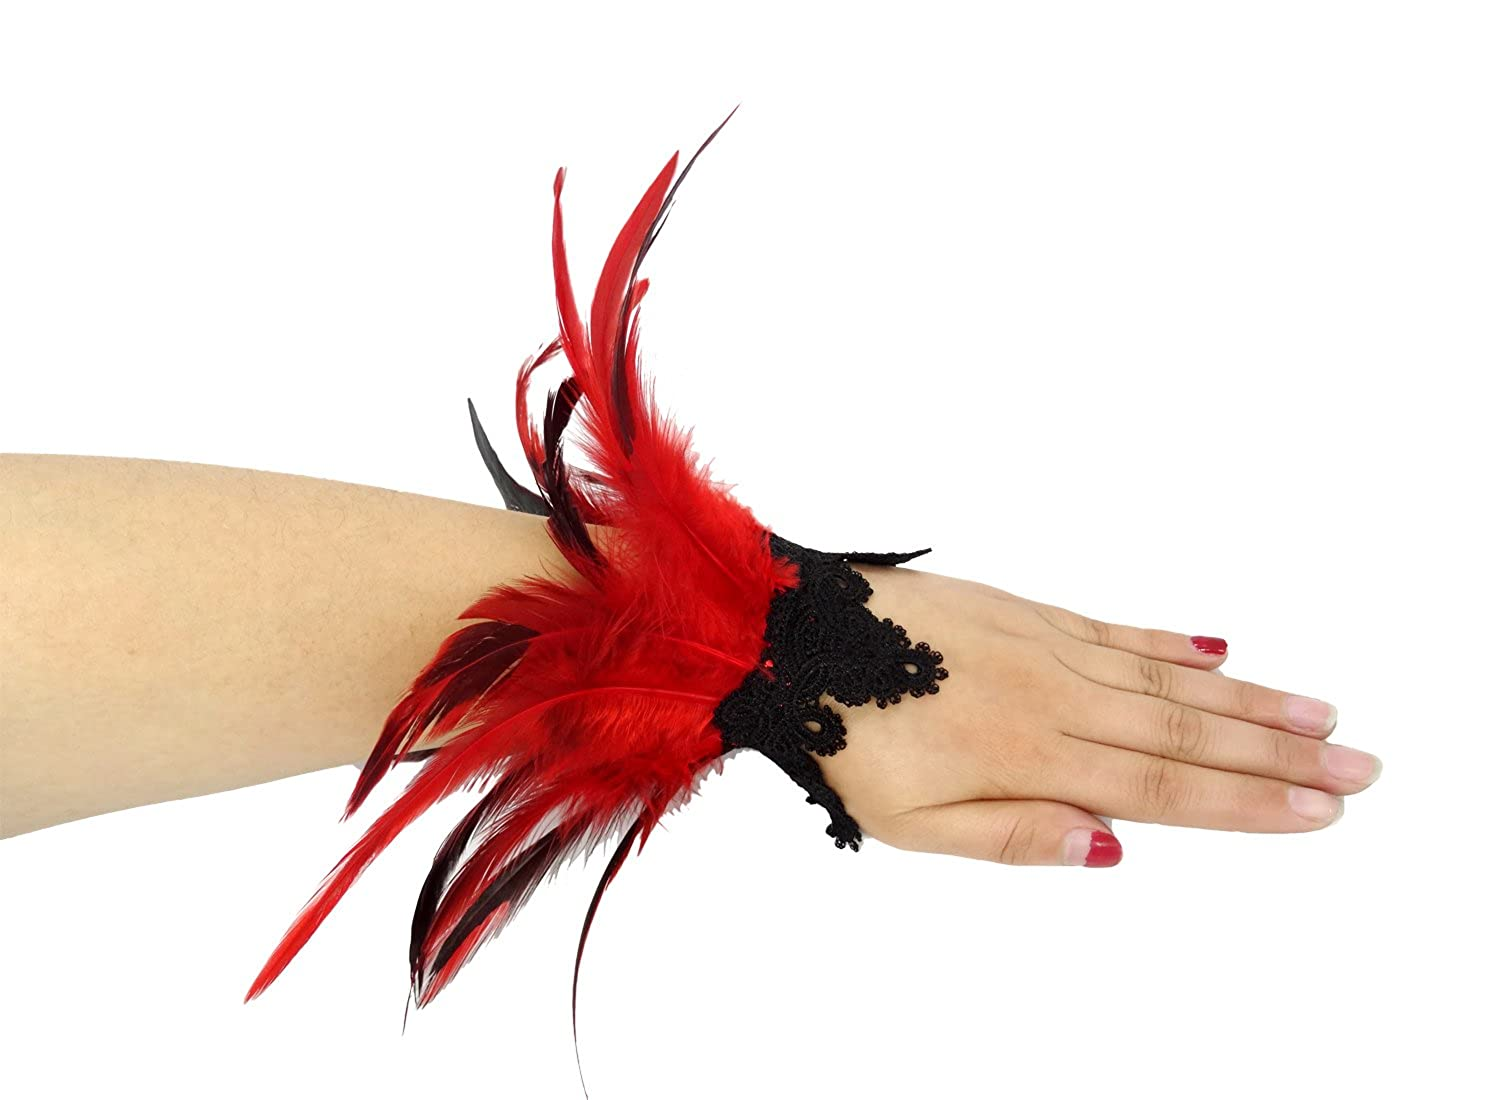 LVOW Natural Feather Lace Wrist Cuffs for Game Party Halloween Pack of 2